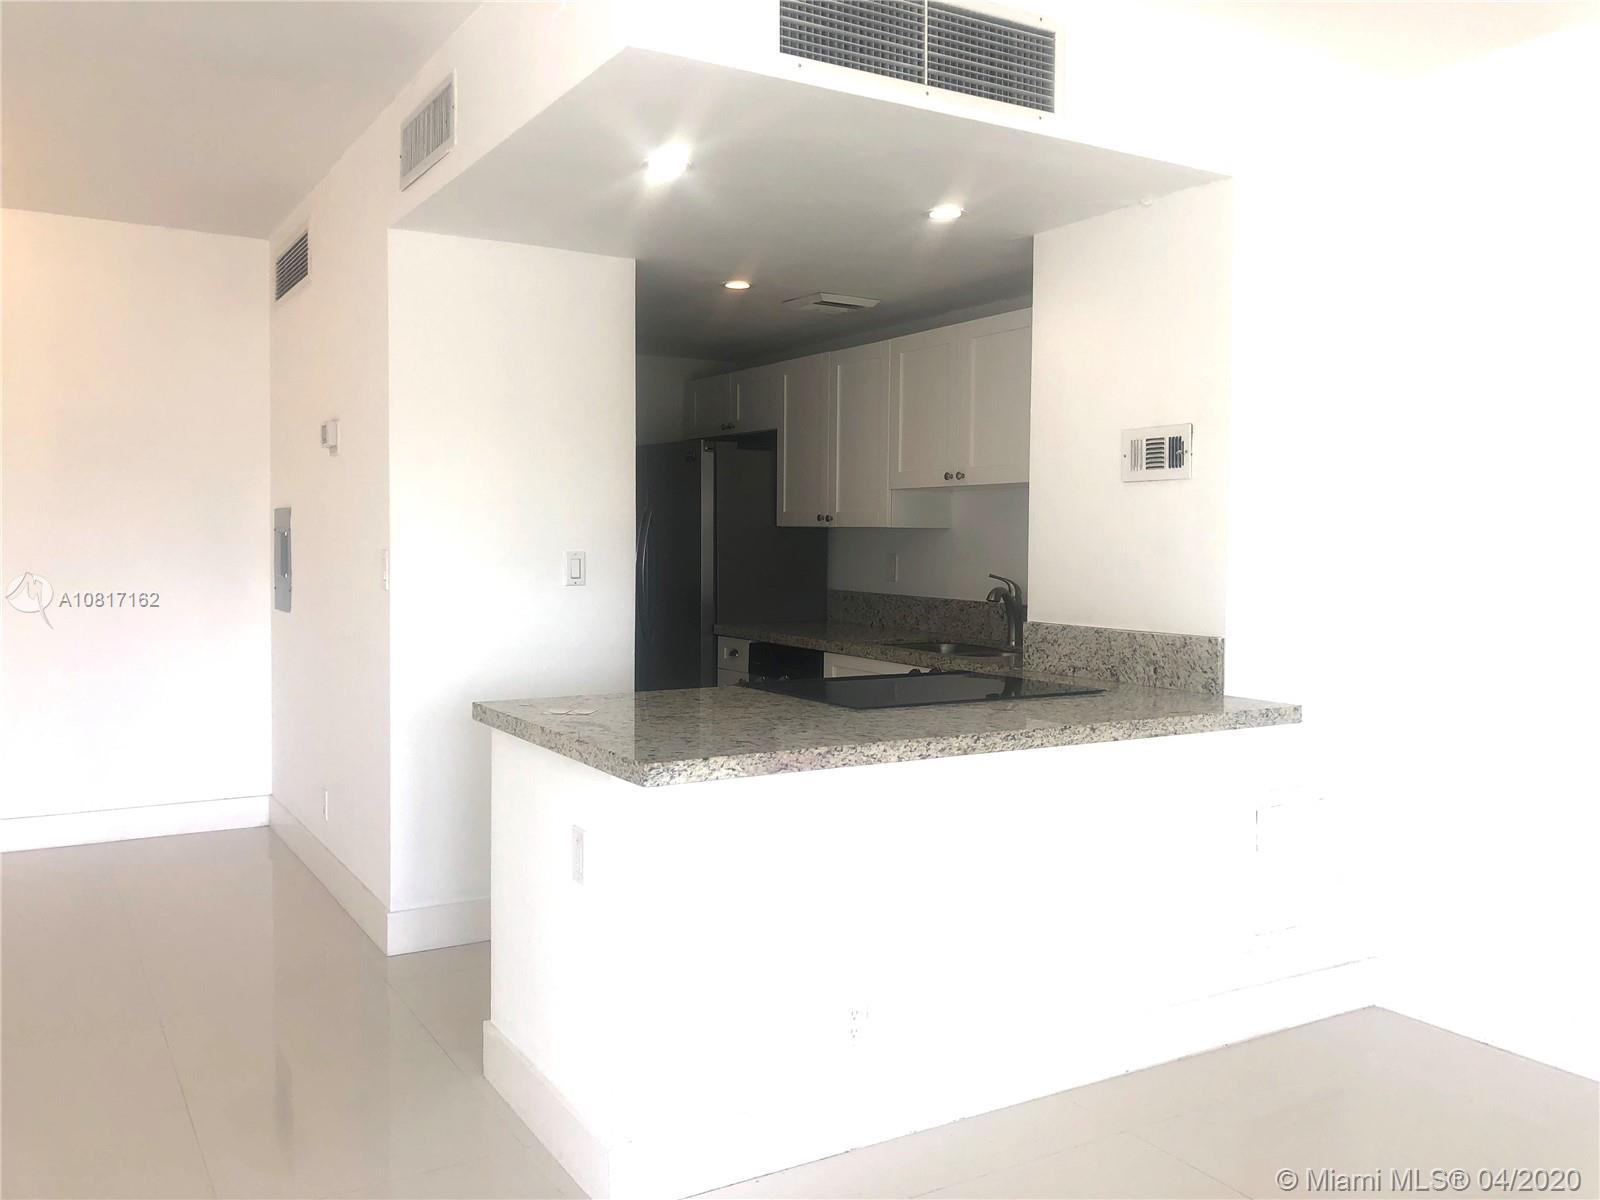 880 NE 69th St # 5L, Miami, Florida 33138, 2 Bedrooms Bedrooms, ,2 BathroomsBathrooms,Residential,For Sale,880 NE 69th St # 5L,A10817162